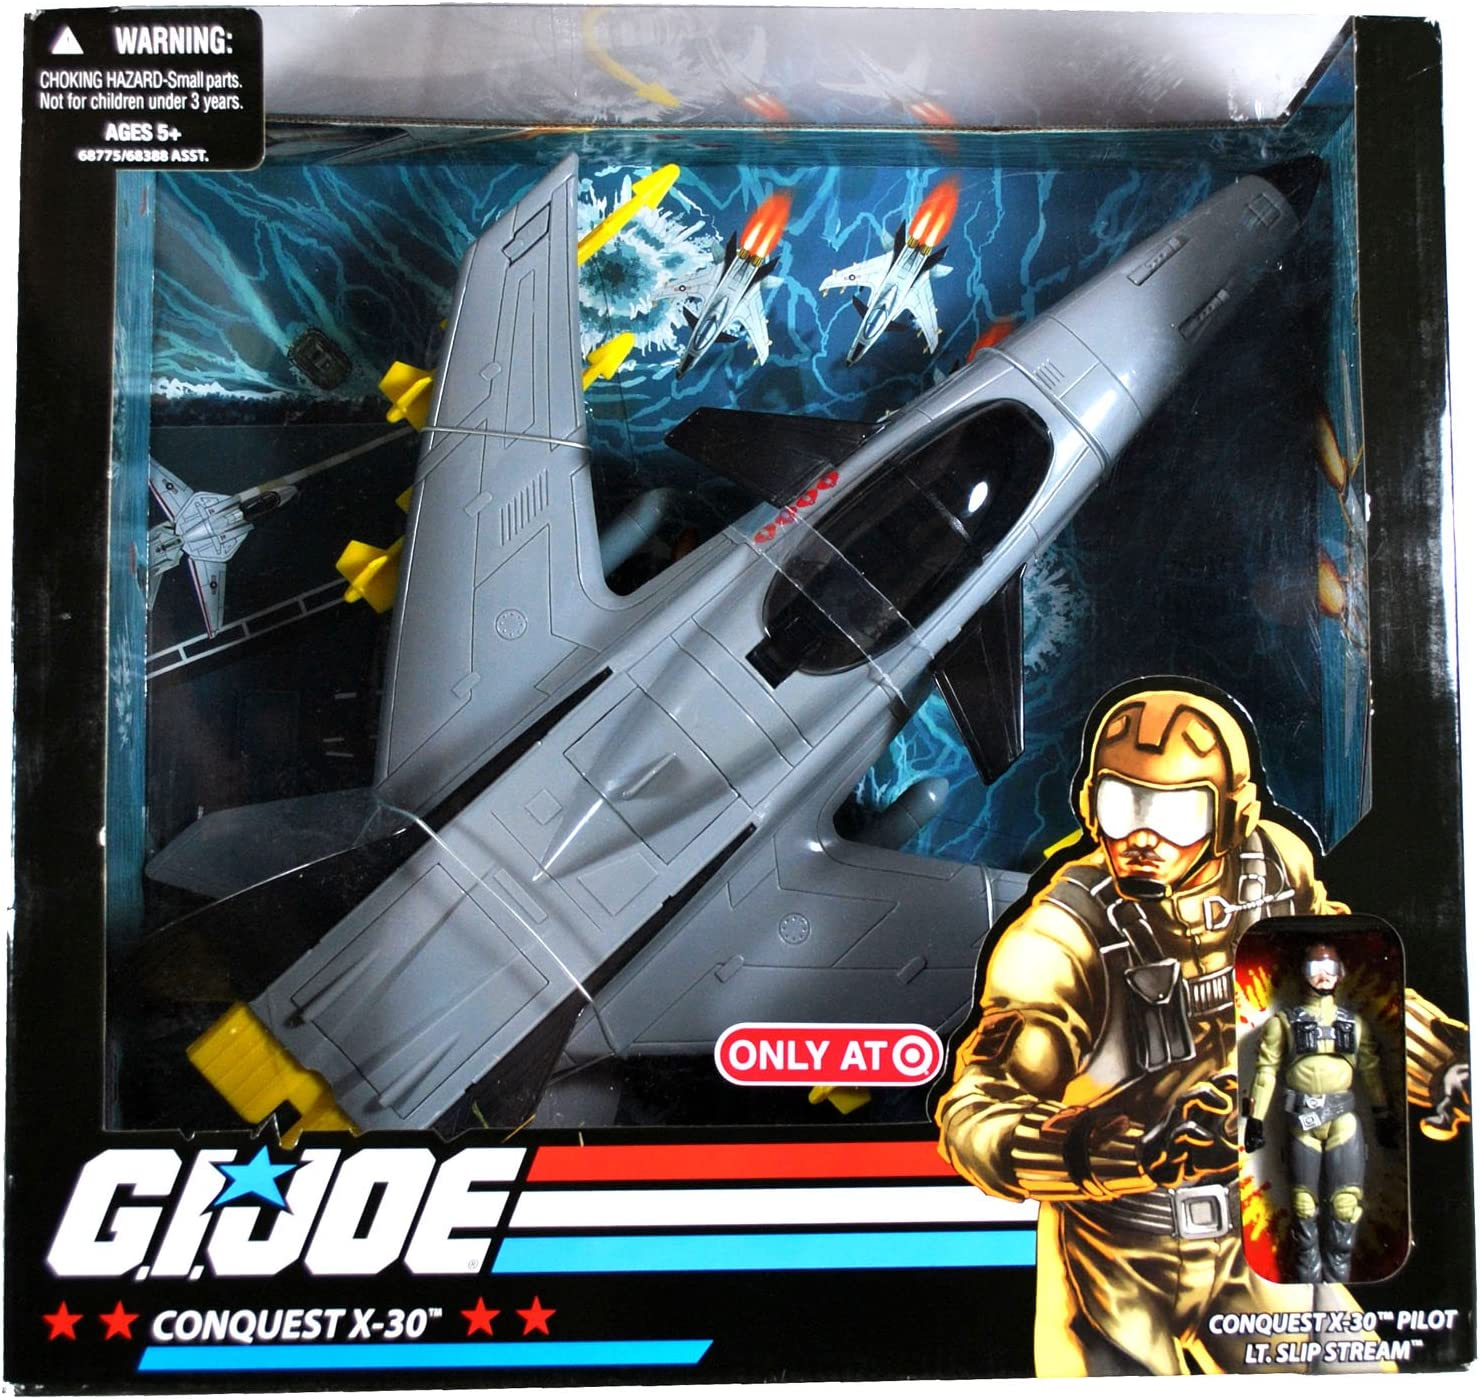 G.I. JOE Exclusive Deluxe Cheap Vehicle Conquest with Slip Popular Lt. X-30 St